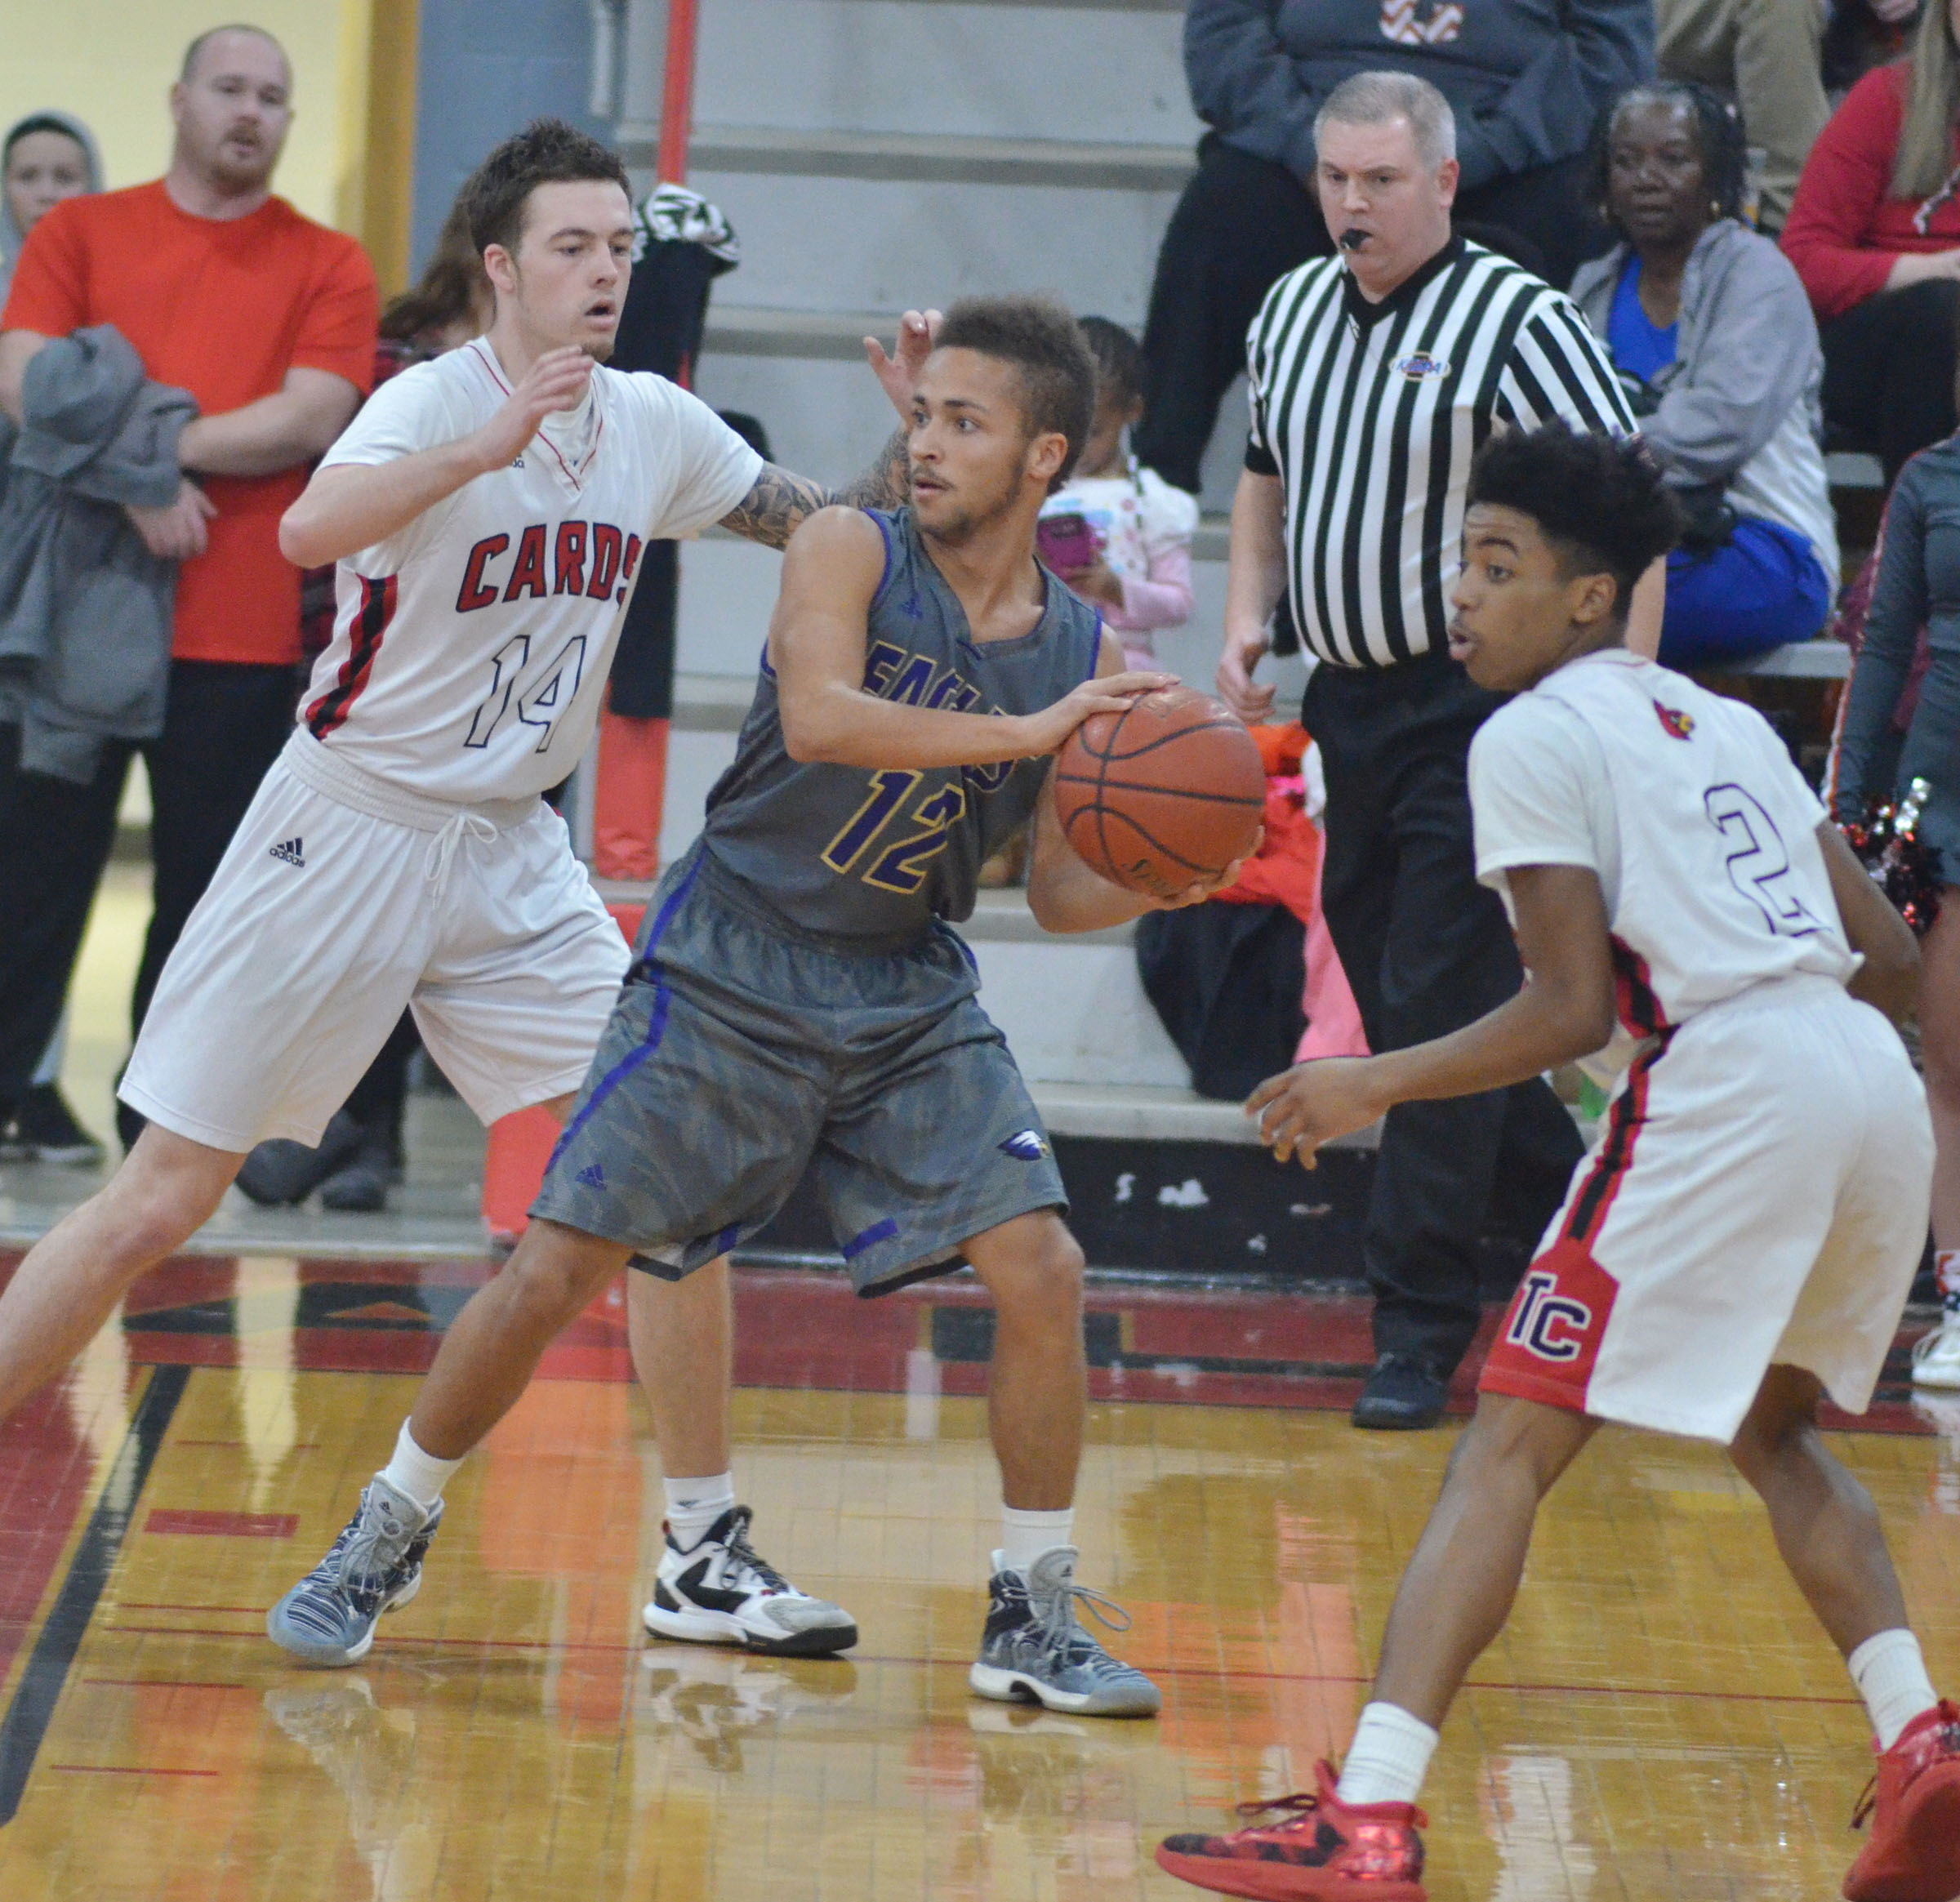 CHS junior Ethan Lay protects the ball.